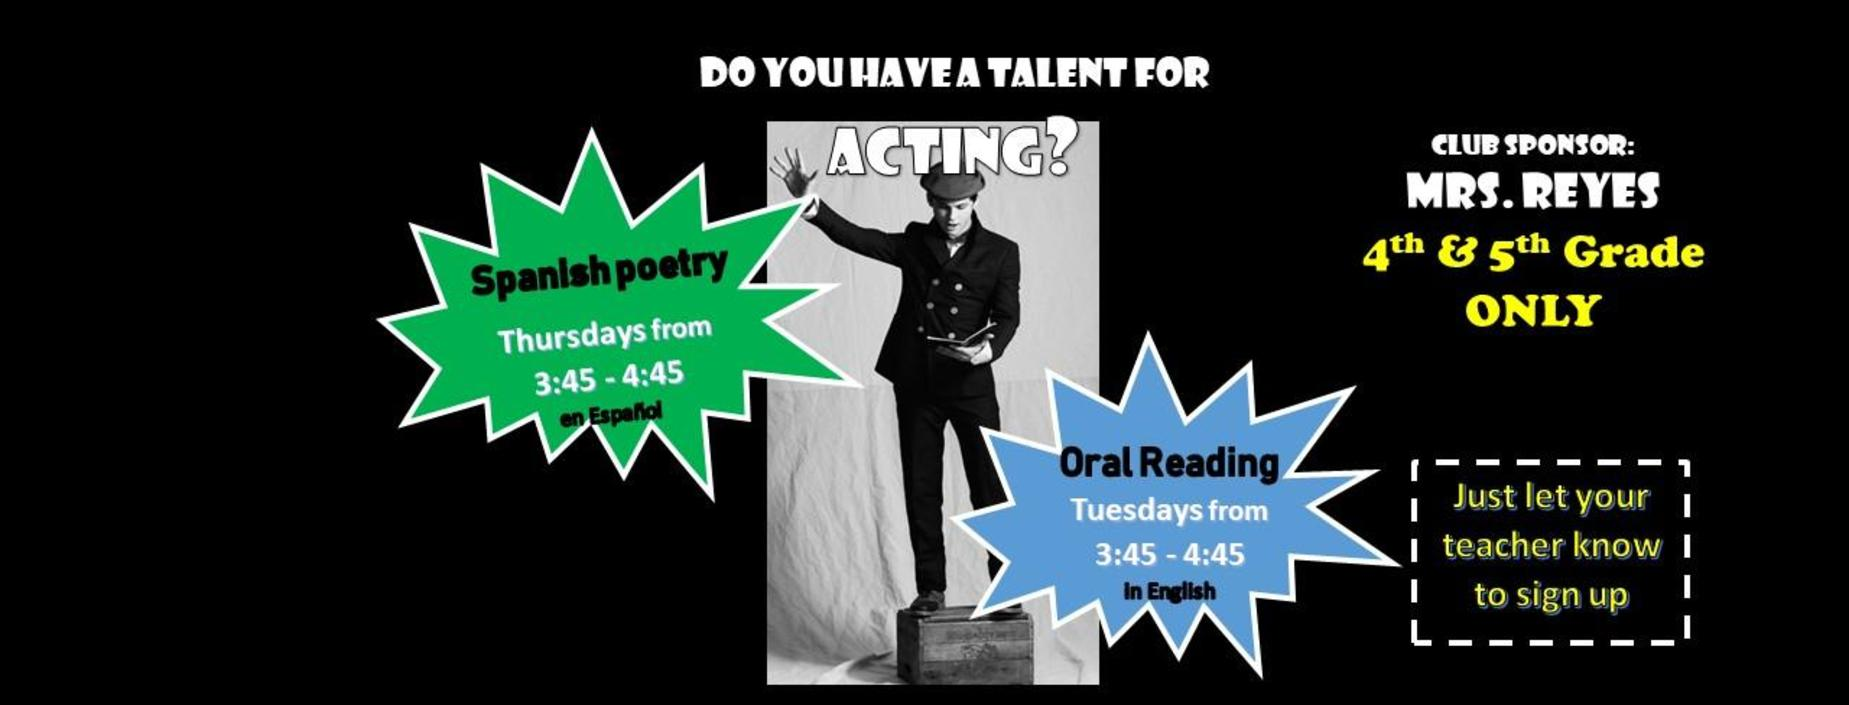 oral reading info